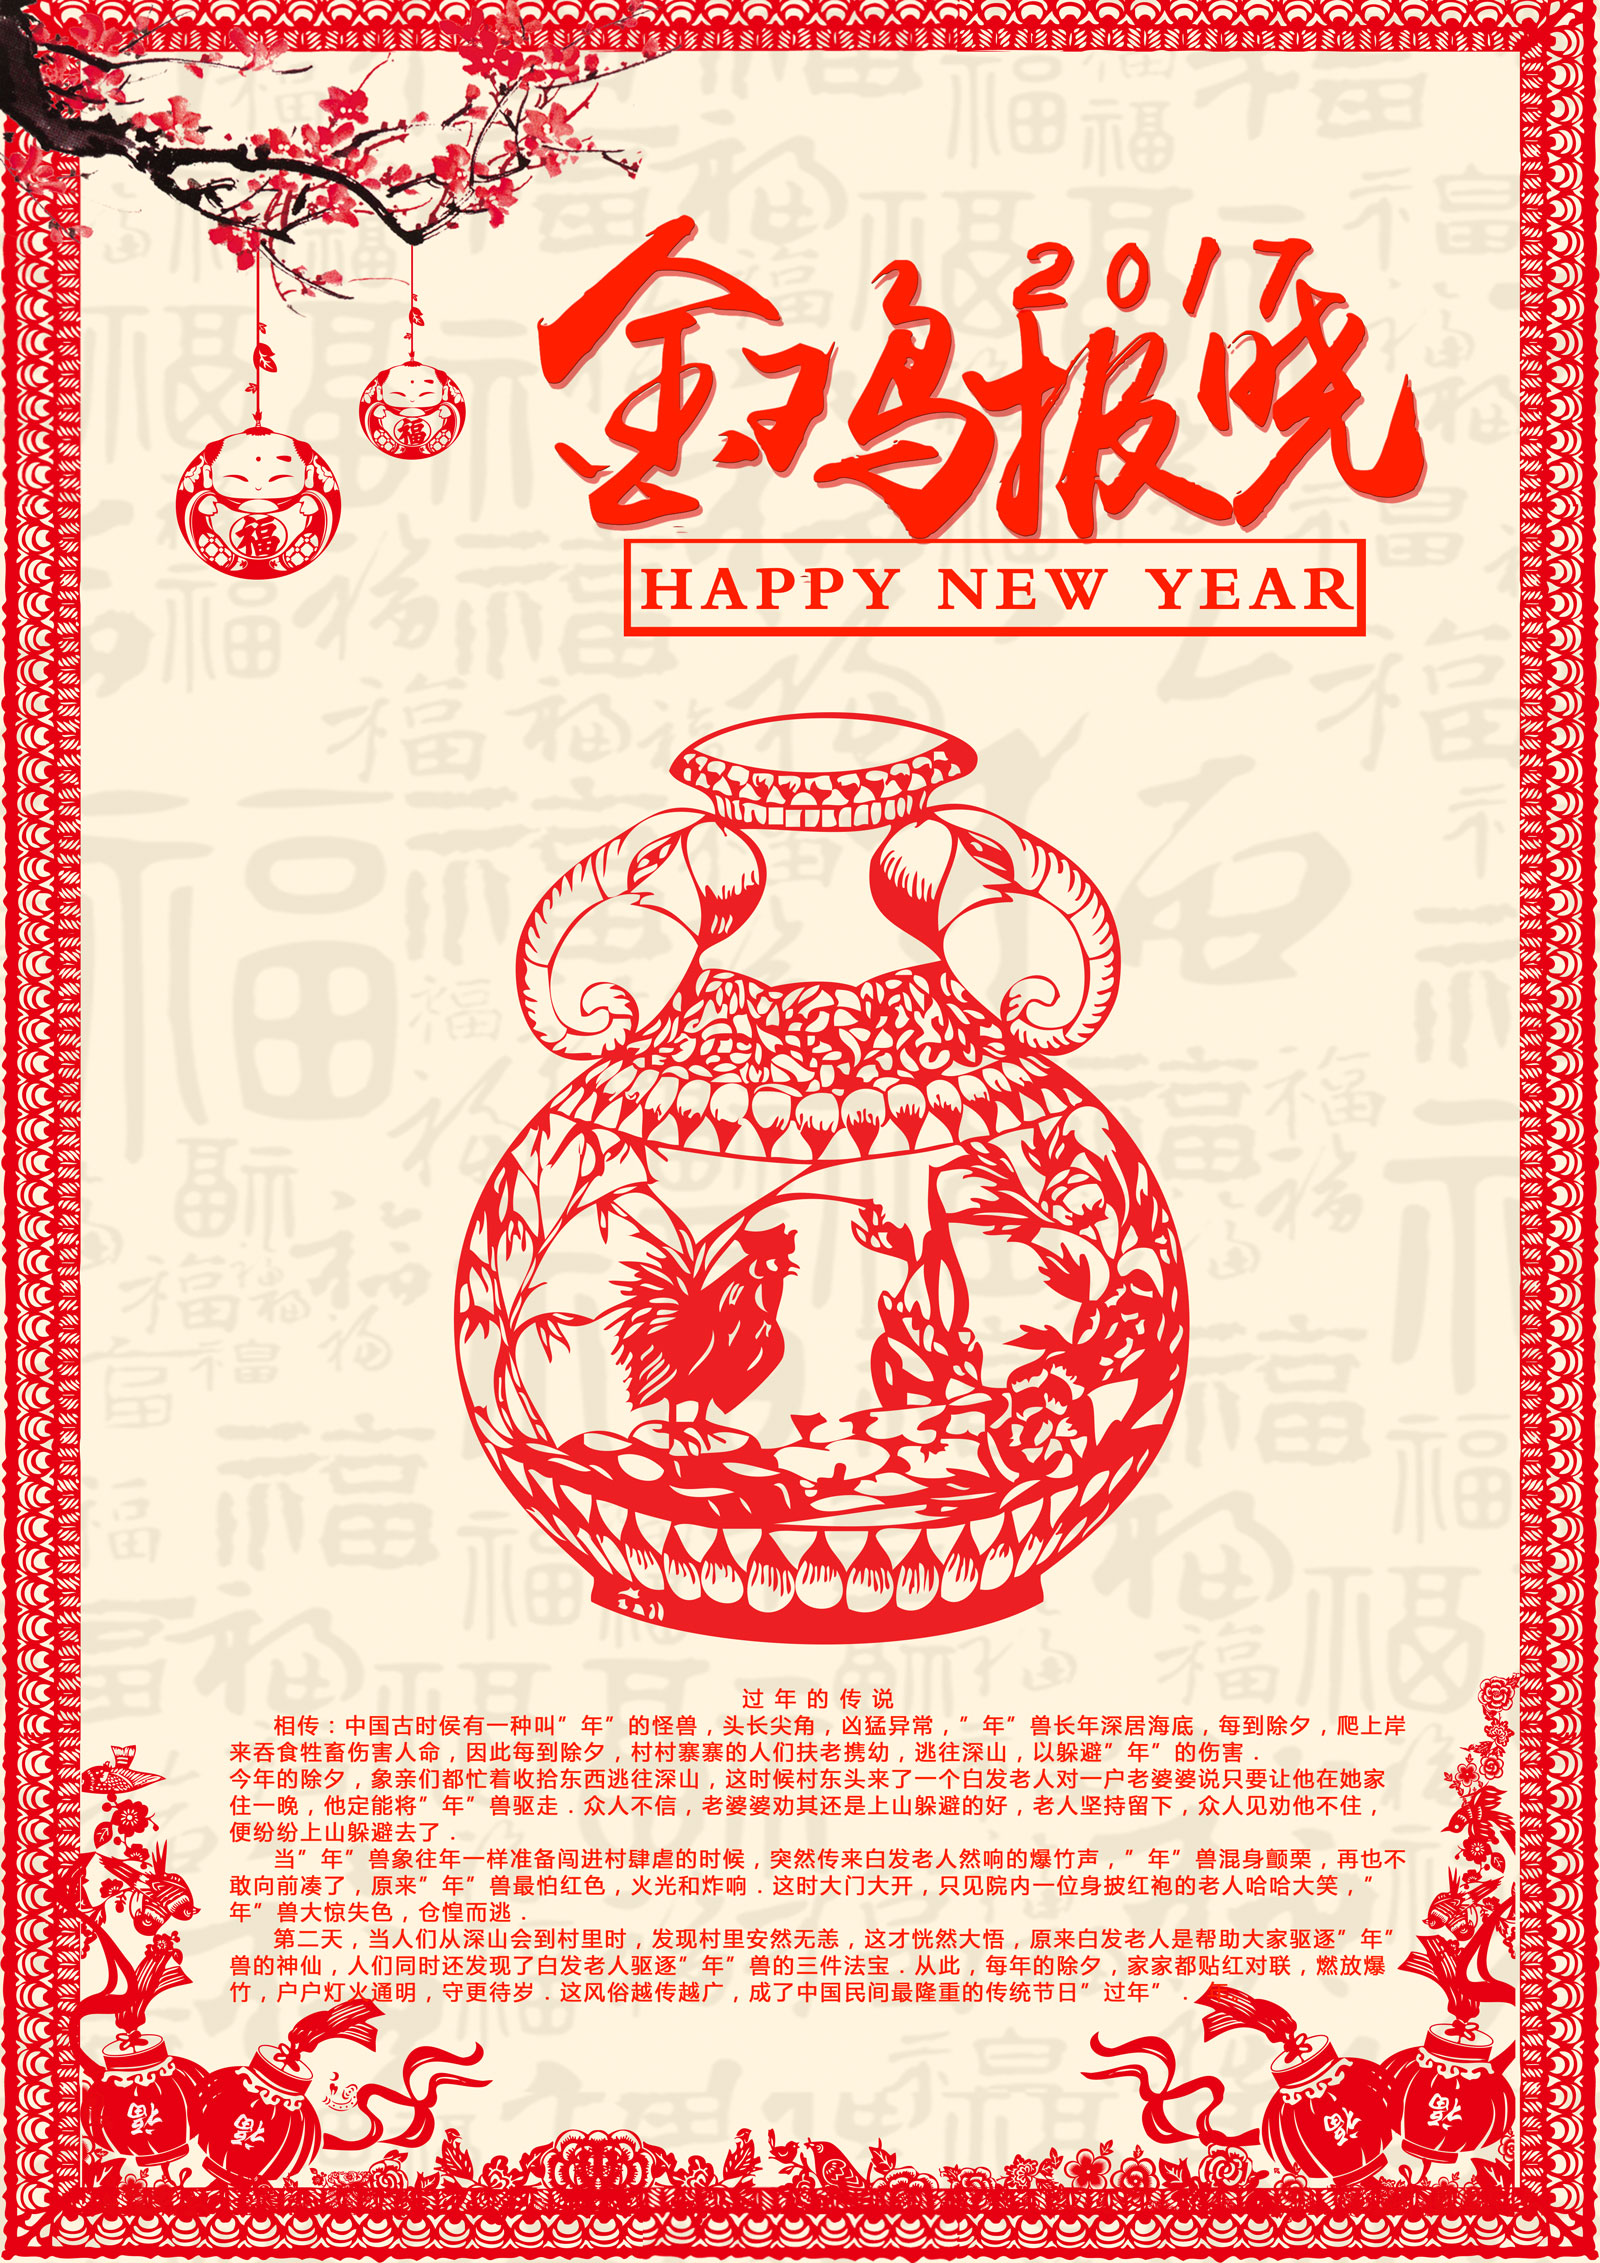 chinesefontdesign.com 2017 03 15 15 27 49 Chinese style year of the rooster in poster design PSD File Free Download